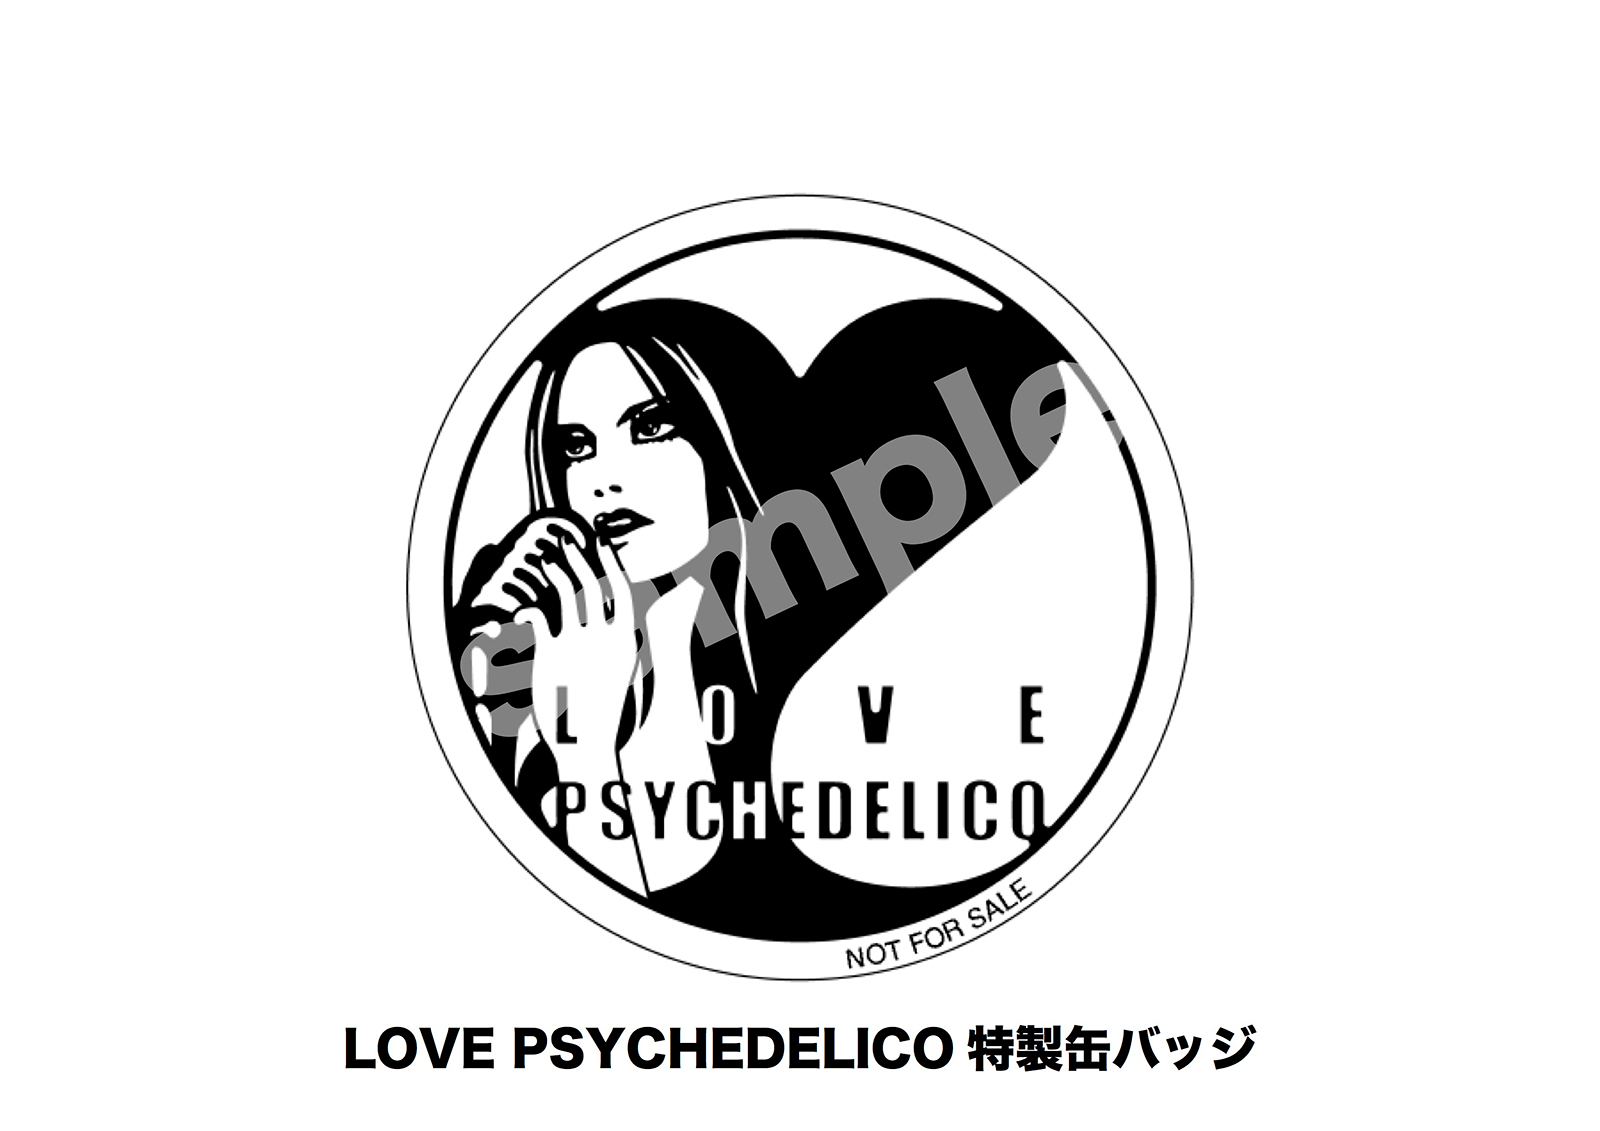 「LOVE PSYCHEDELICO特製缶バッジ」